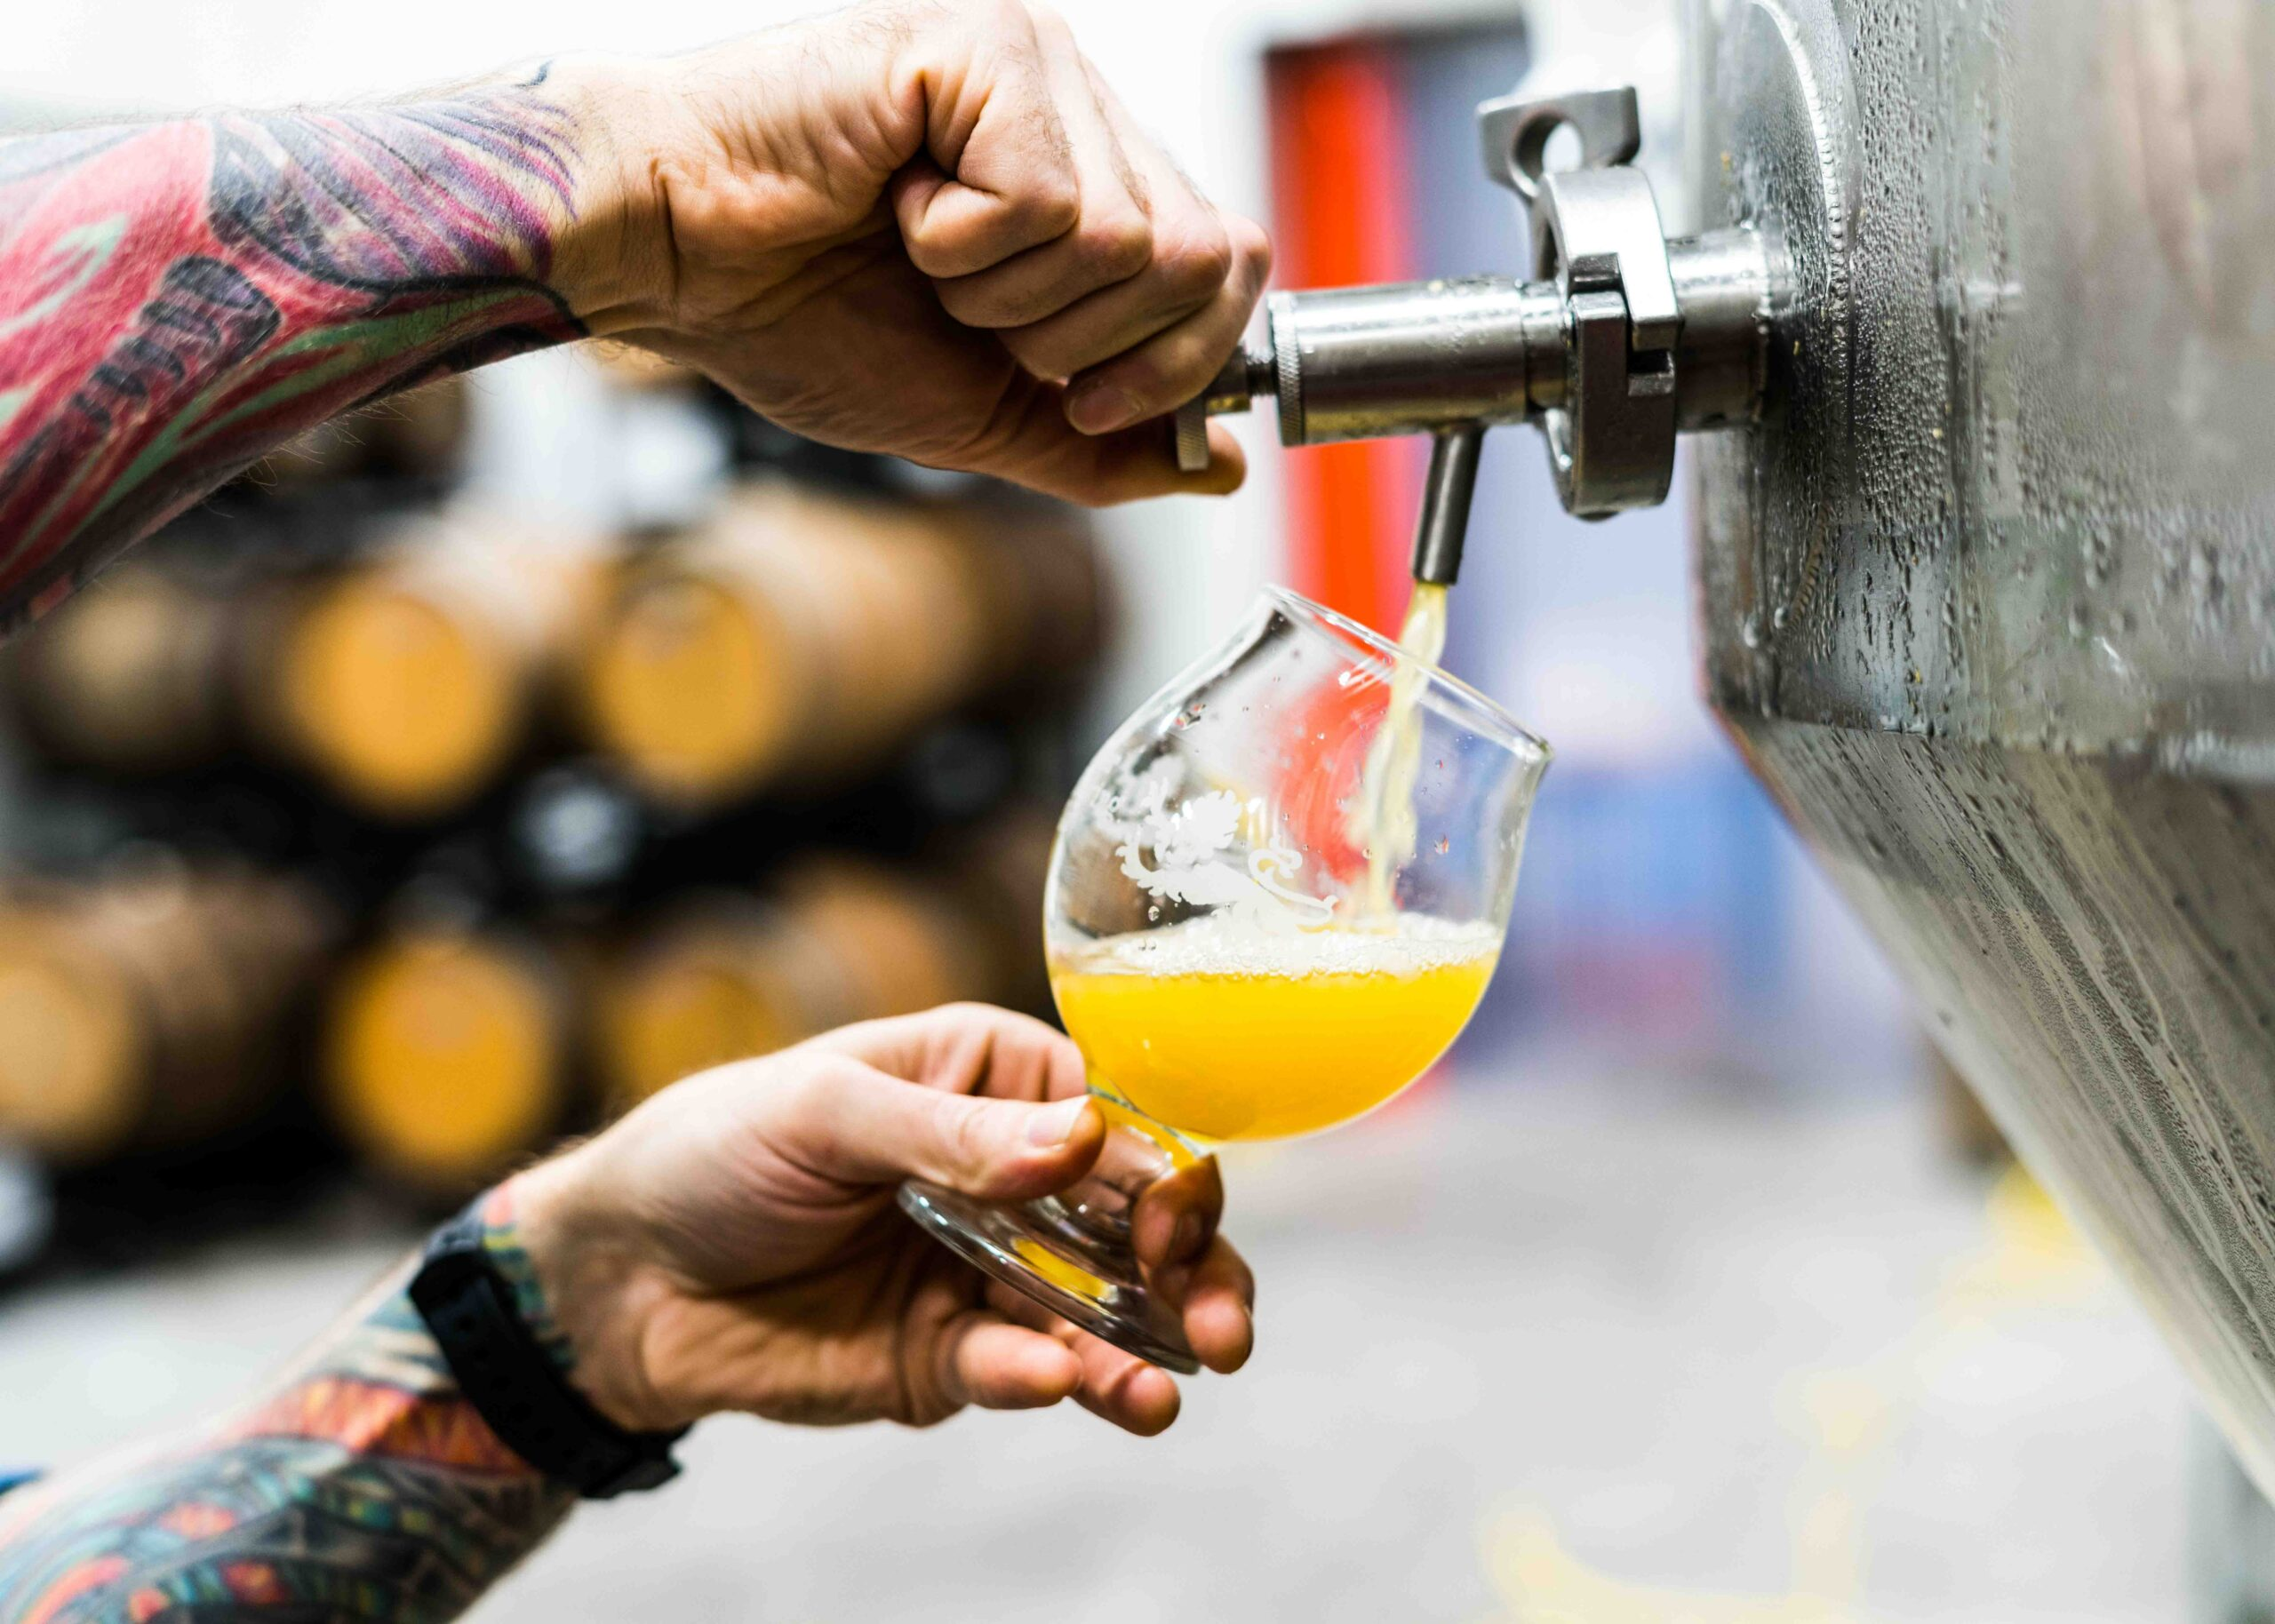 neipa being poured from tap